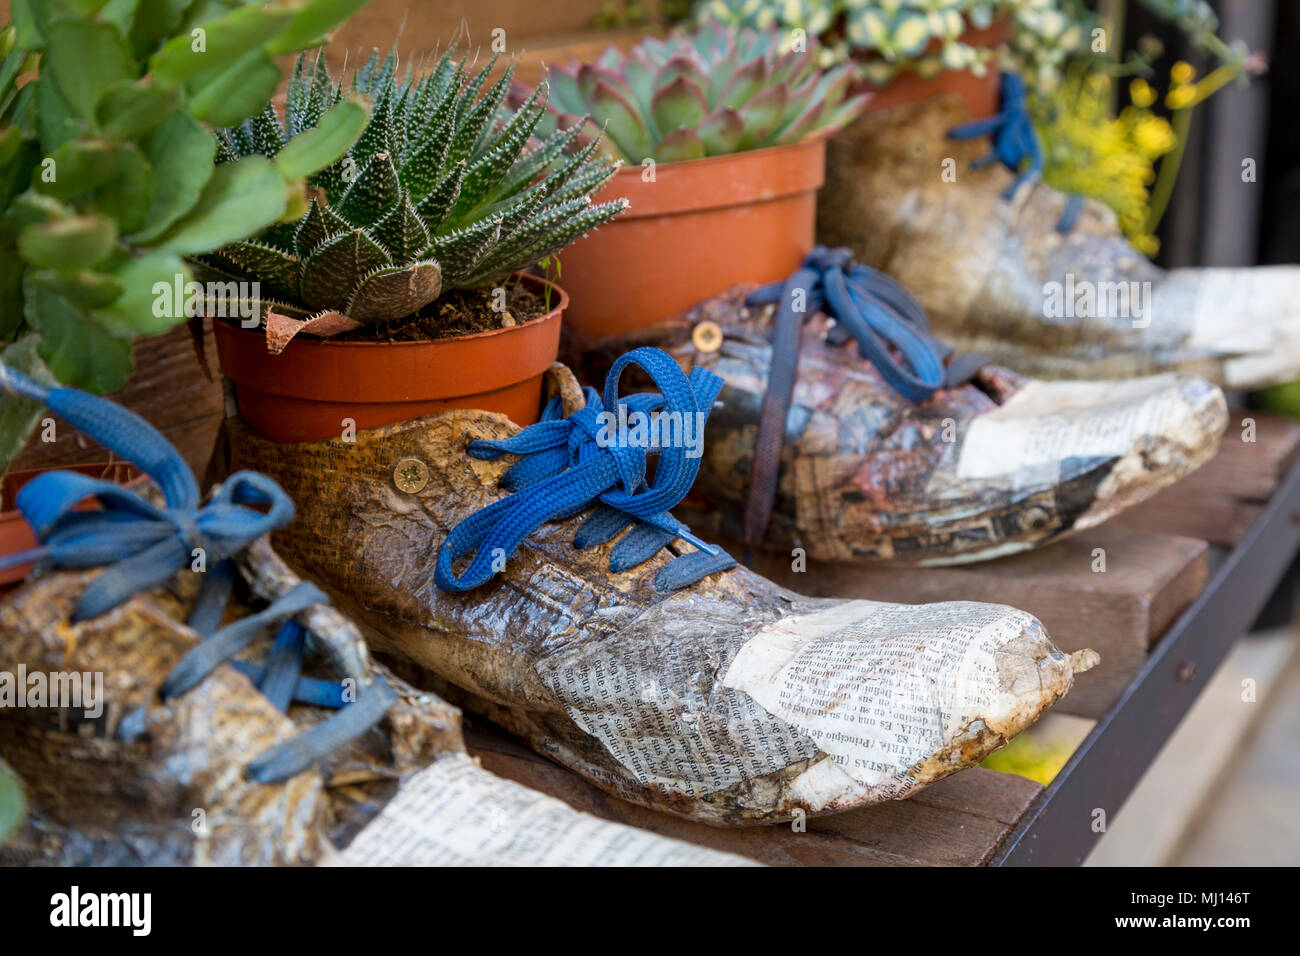 Shoes as planters in a unique display at a shoe store in Montepulciano, Tuscany, Italy - Stock Image